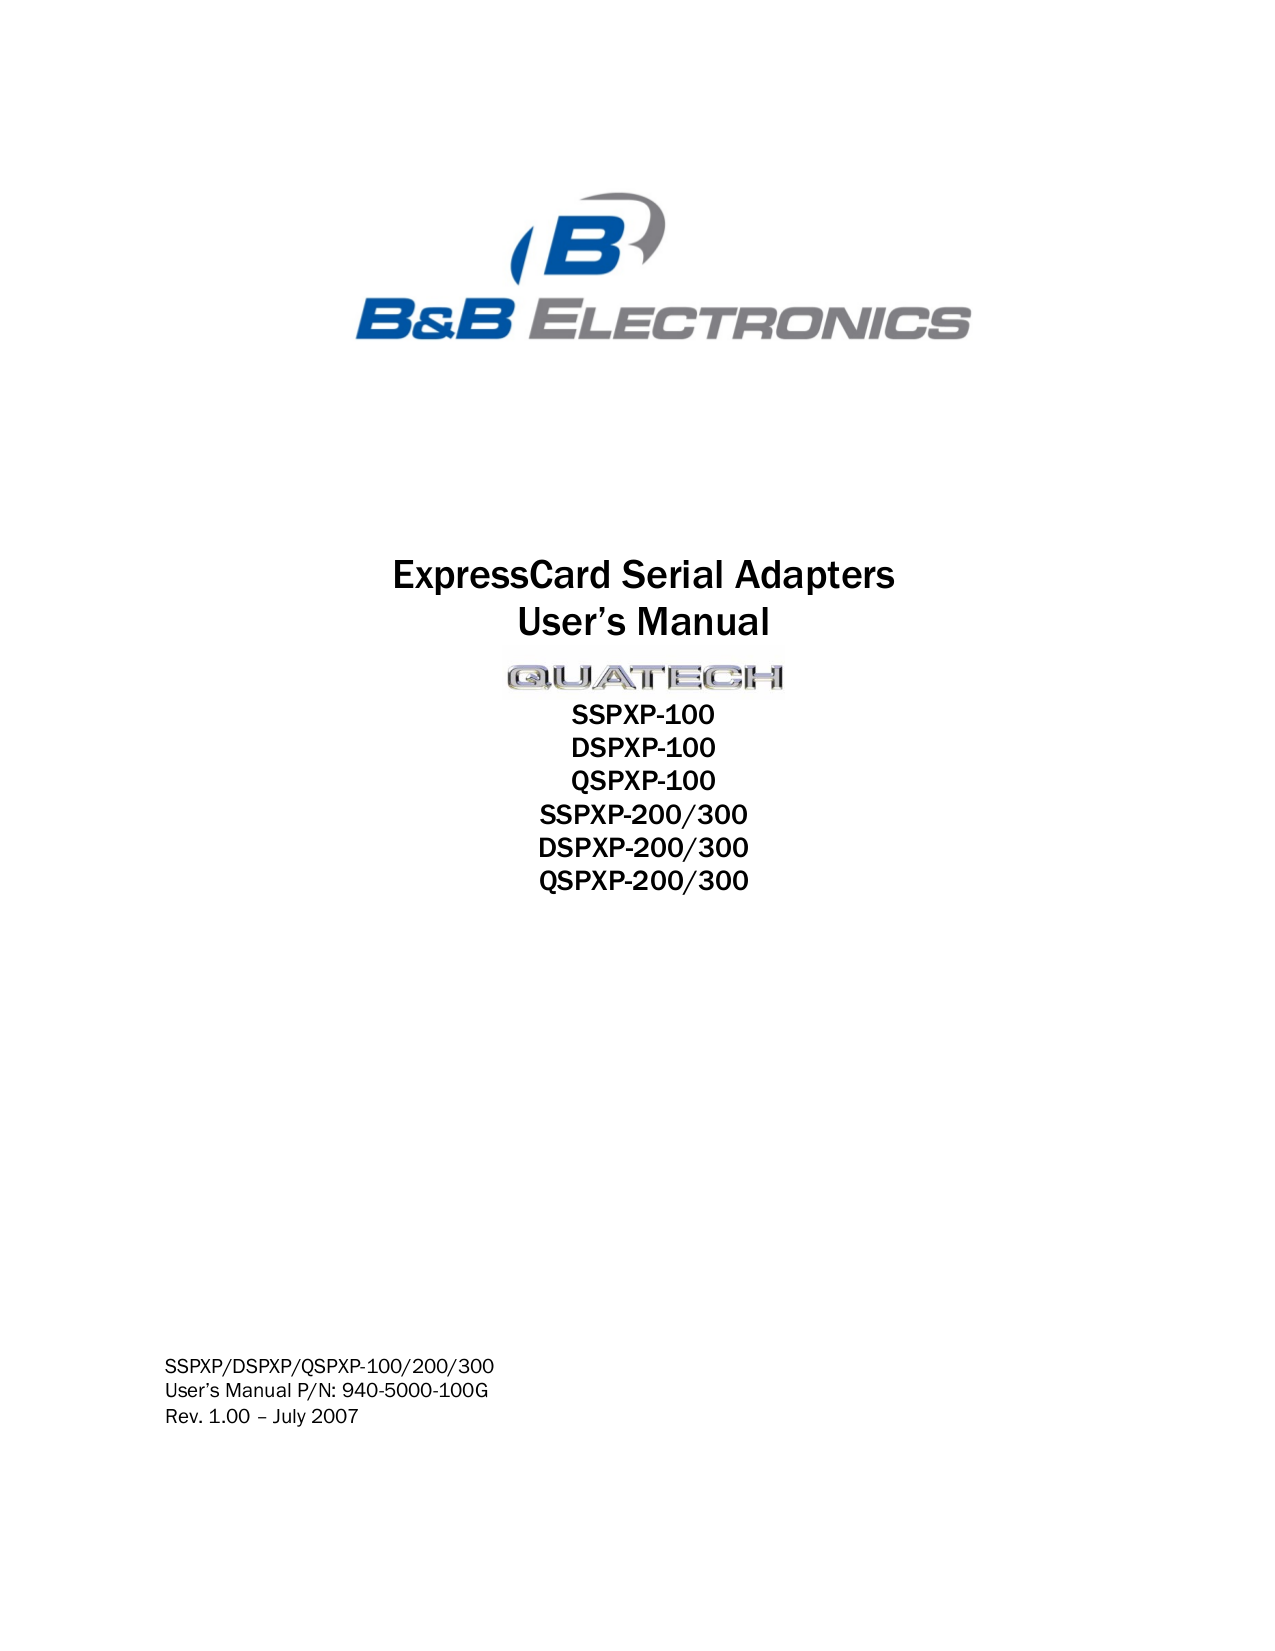 pdf for Quatech Other QSPXP-200 PCI Express Devices manual